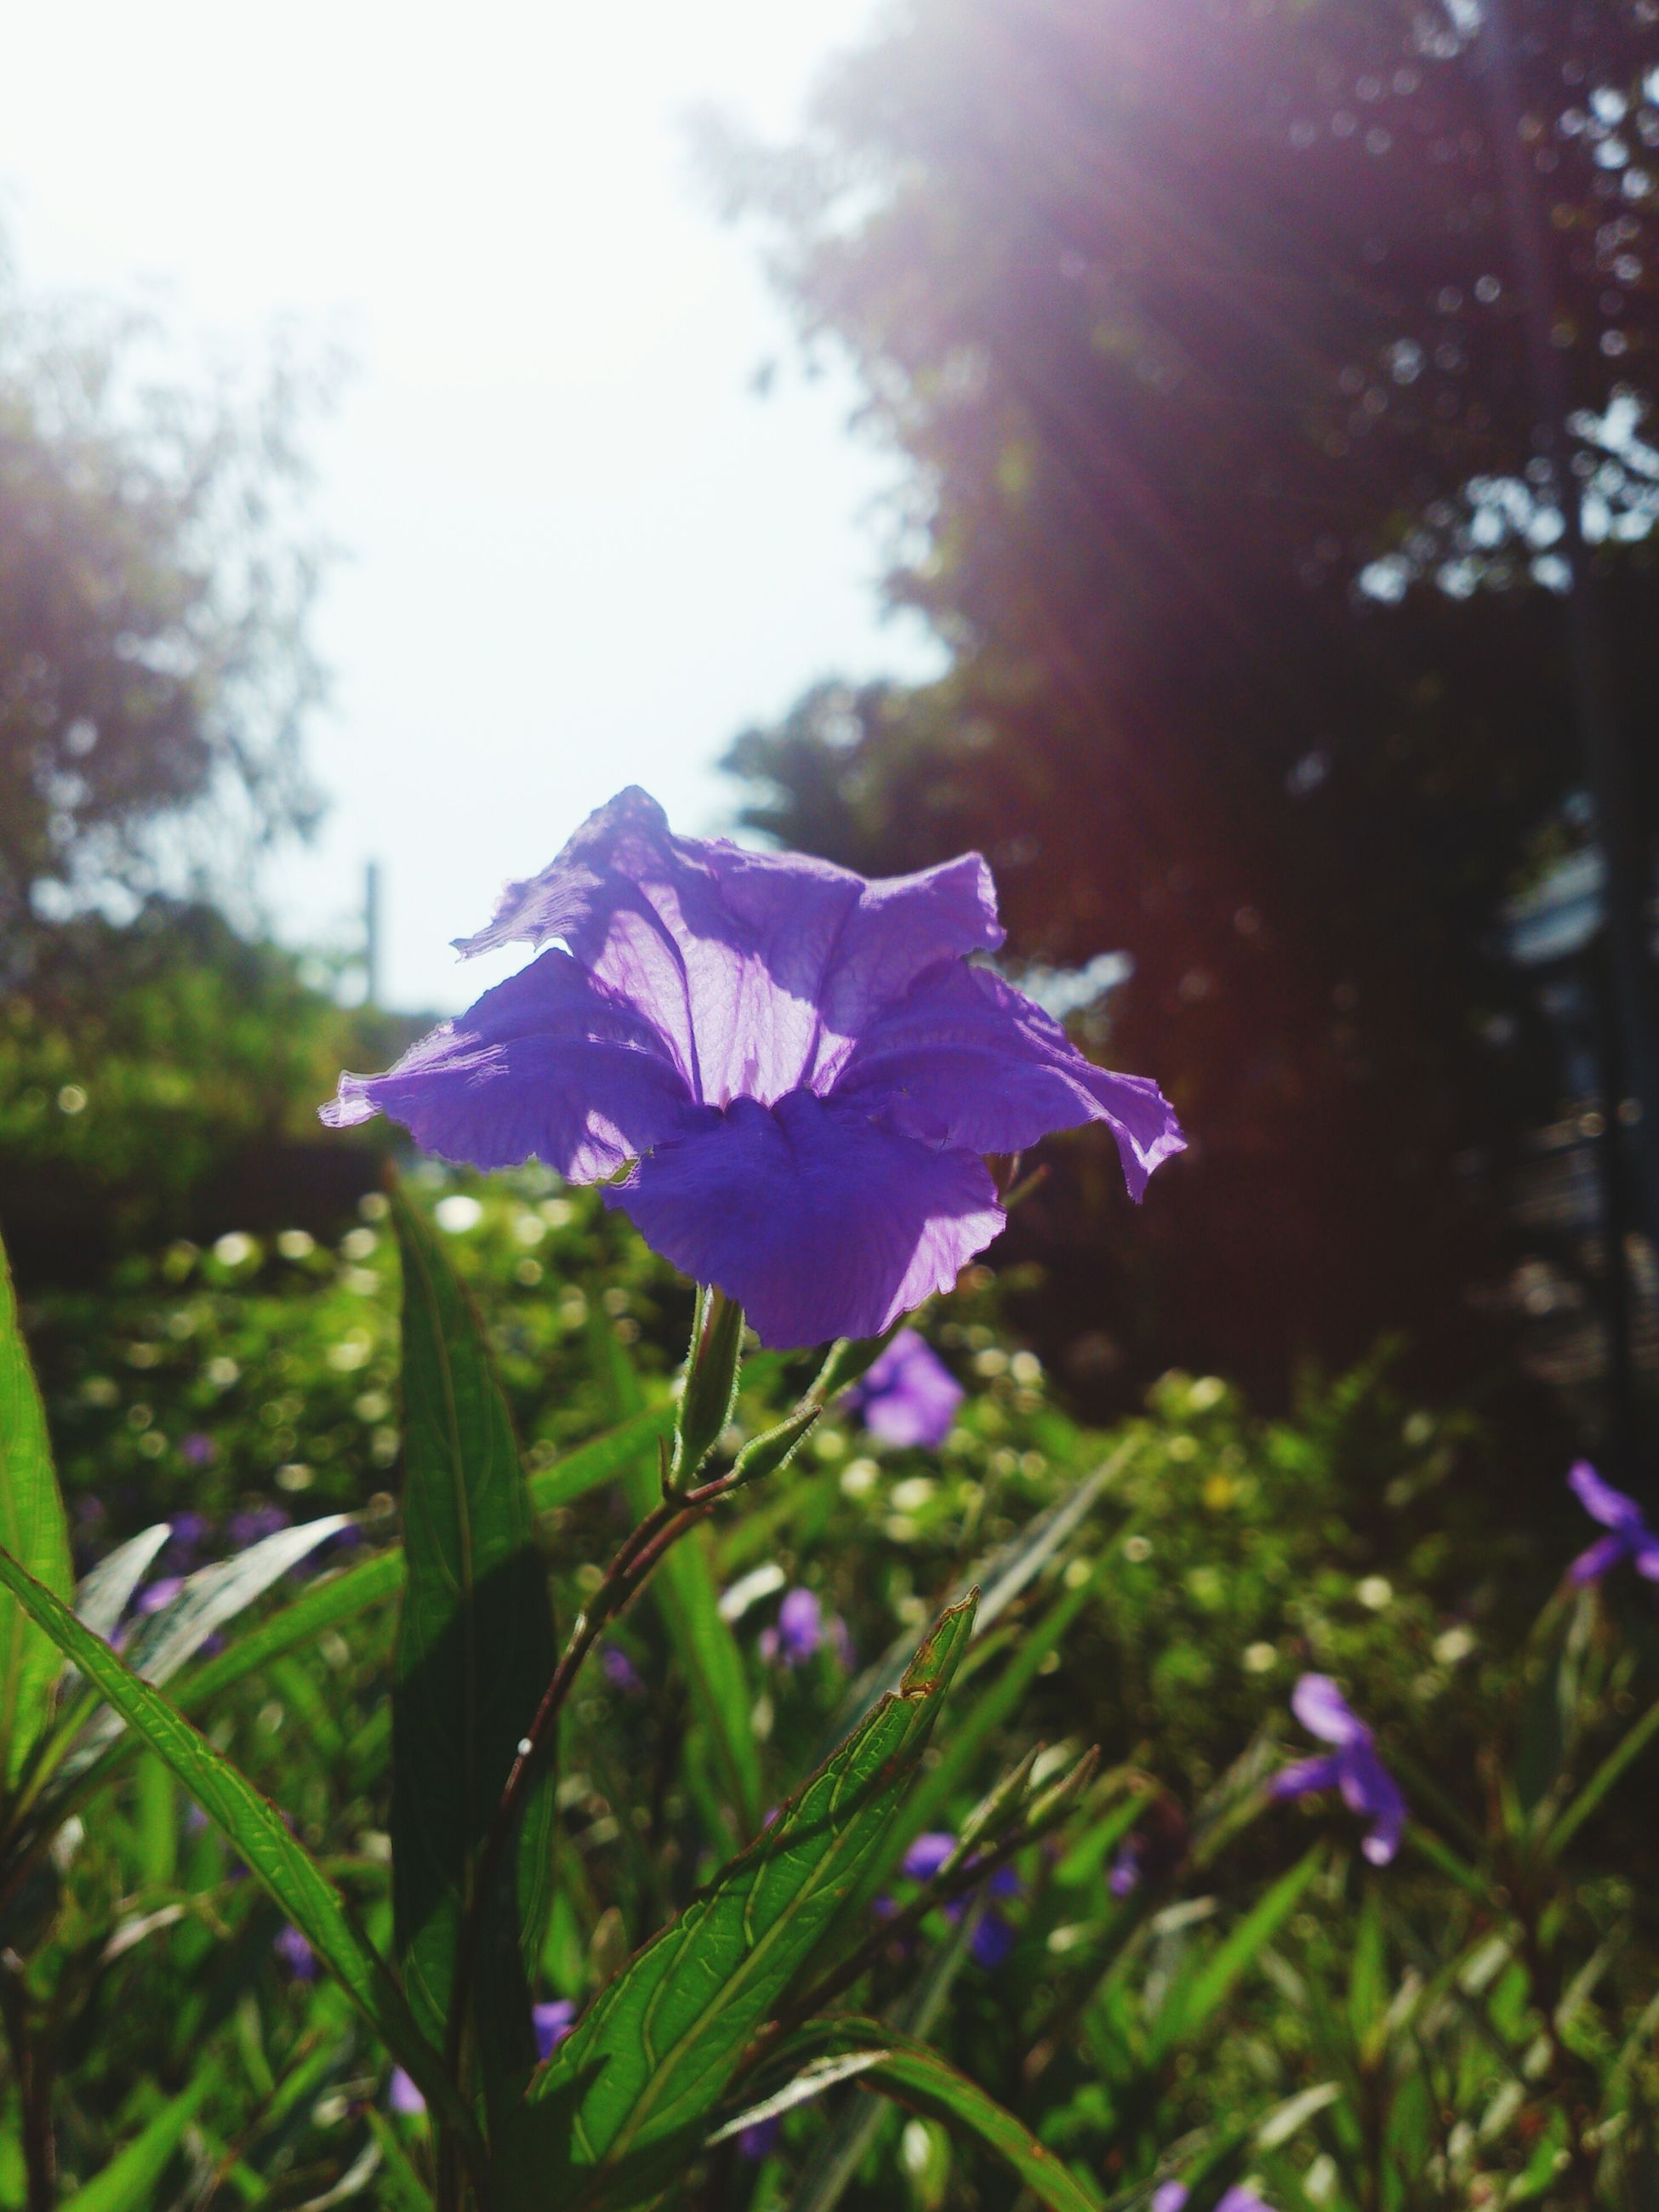 flower, petal, fragility, purple, freshness, growth, flower head, focus on foreground, beauty in nature, blooming, close-up, nature, plant, leaf, in bloom, blue, blossom, park - man made space, day, single flower